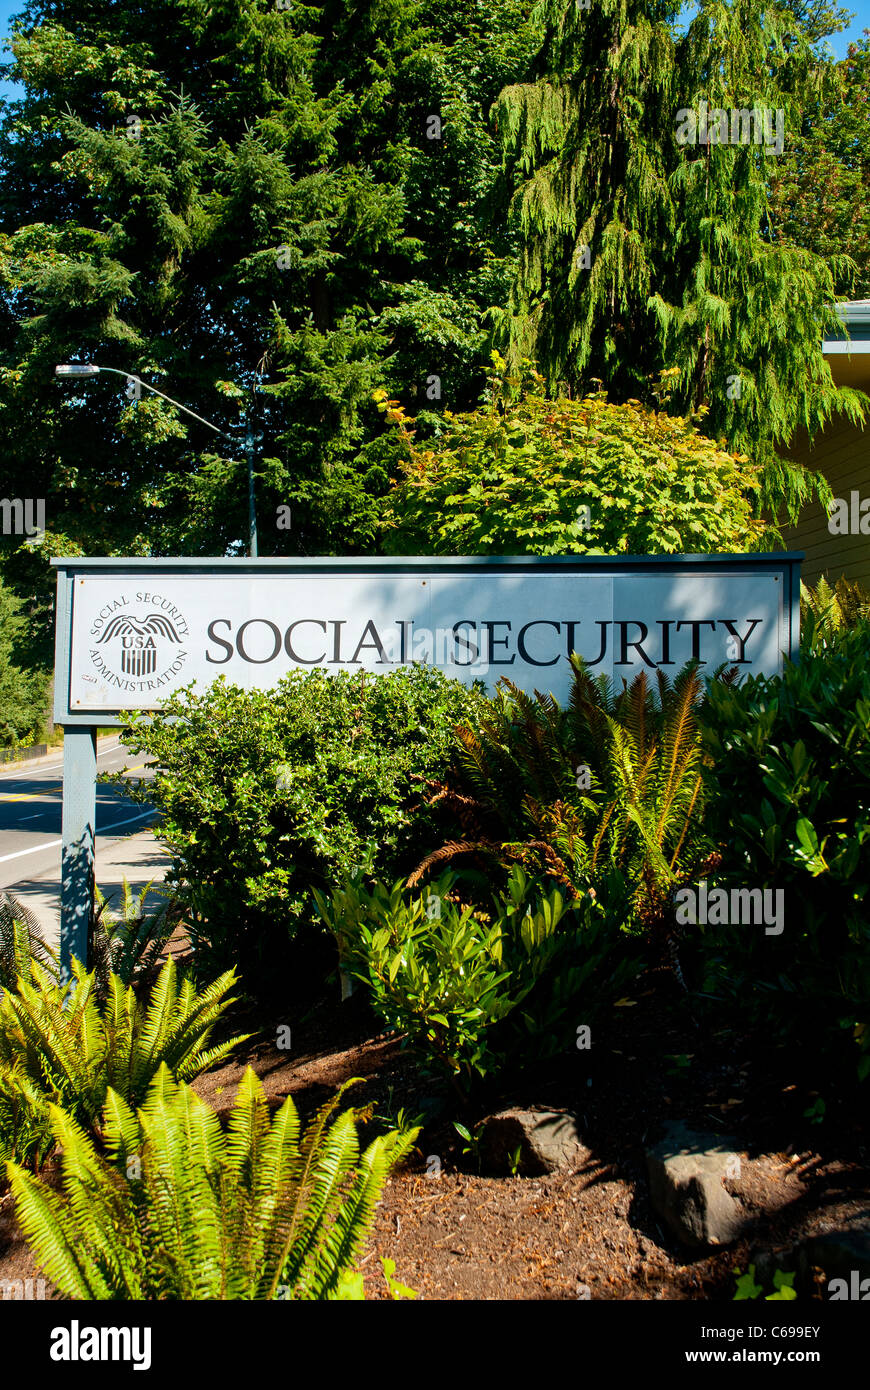 Sign in driveway of Social Security Office in Olympia, Washington State. - Stock Image